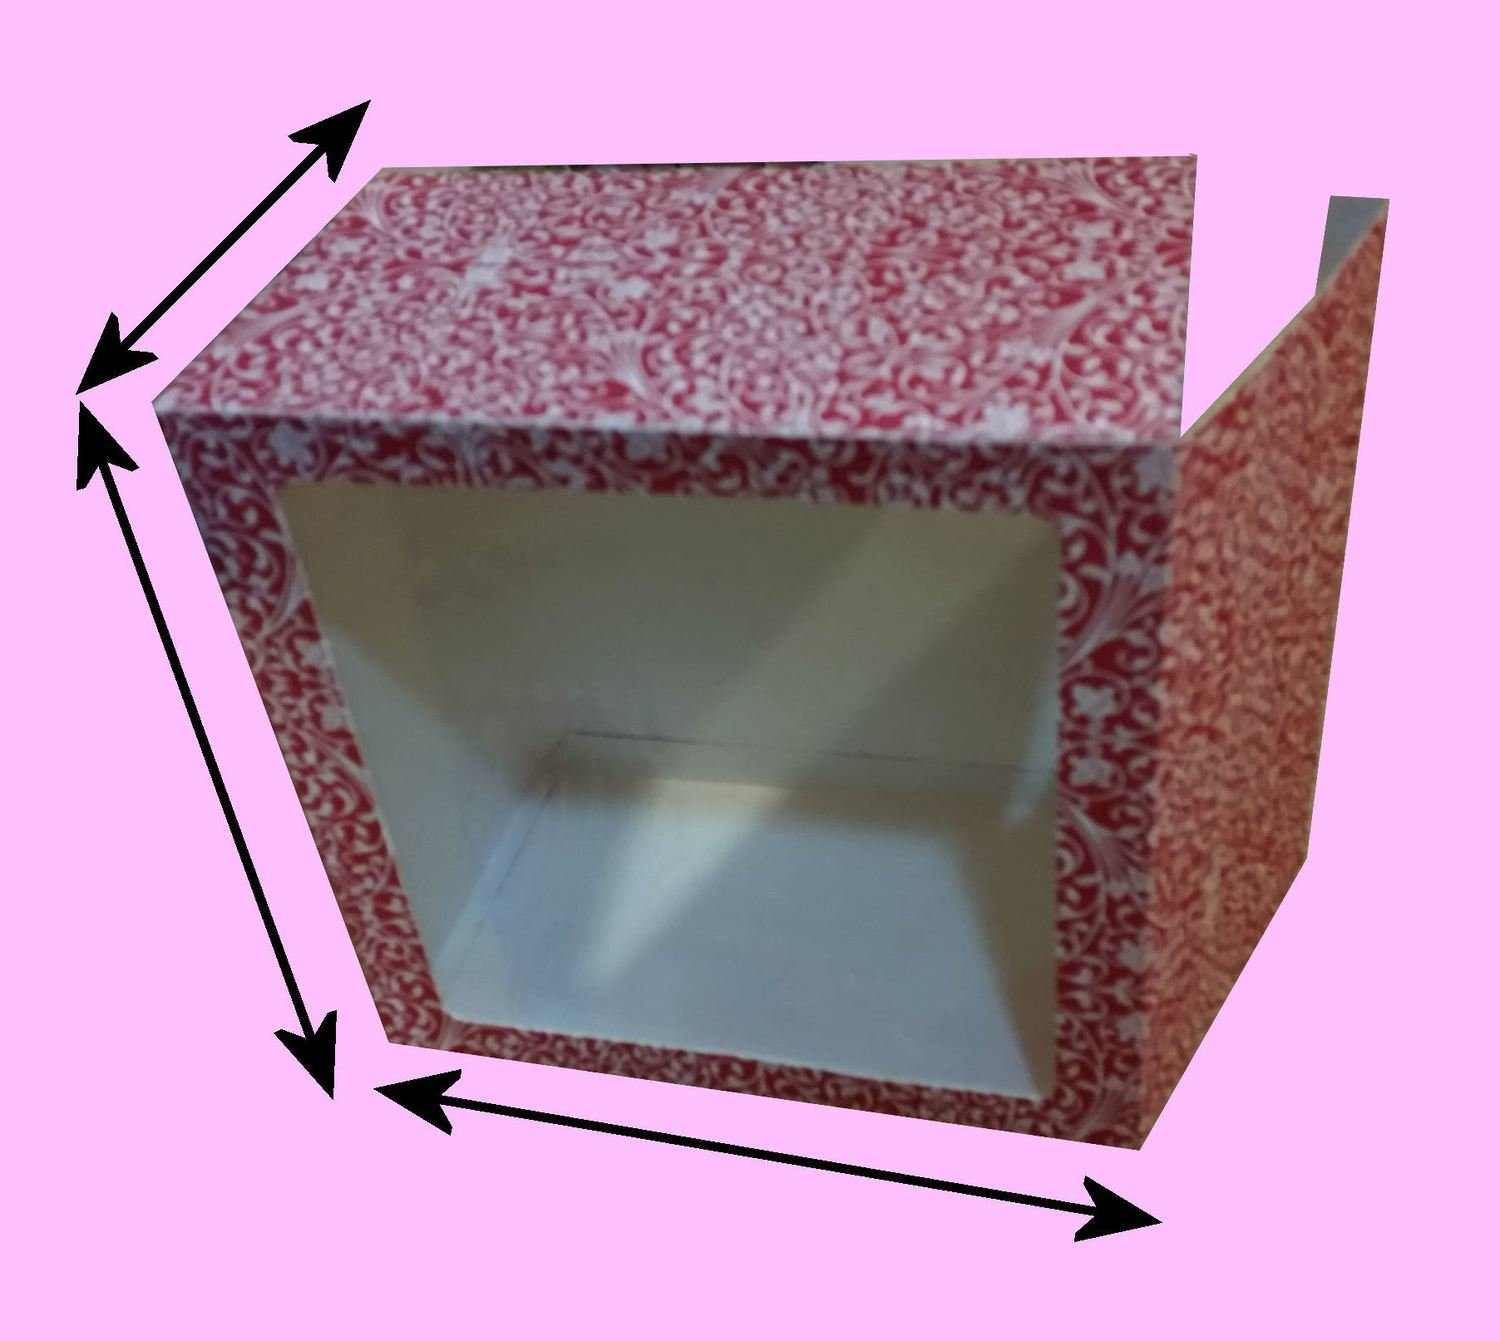 Gift Box 7W x 7H x 4D inches with front aperture and tabbed lid closure